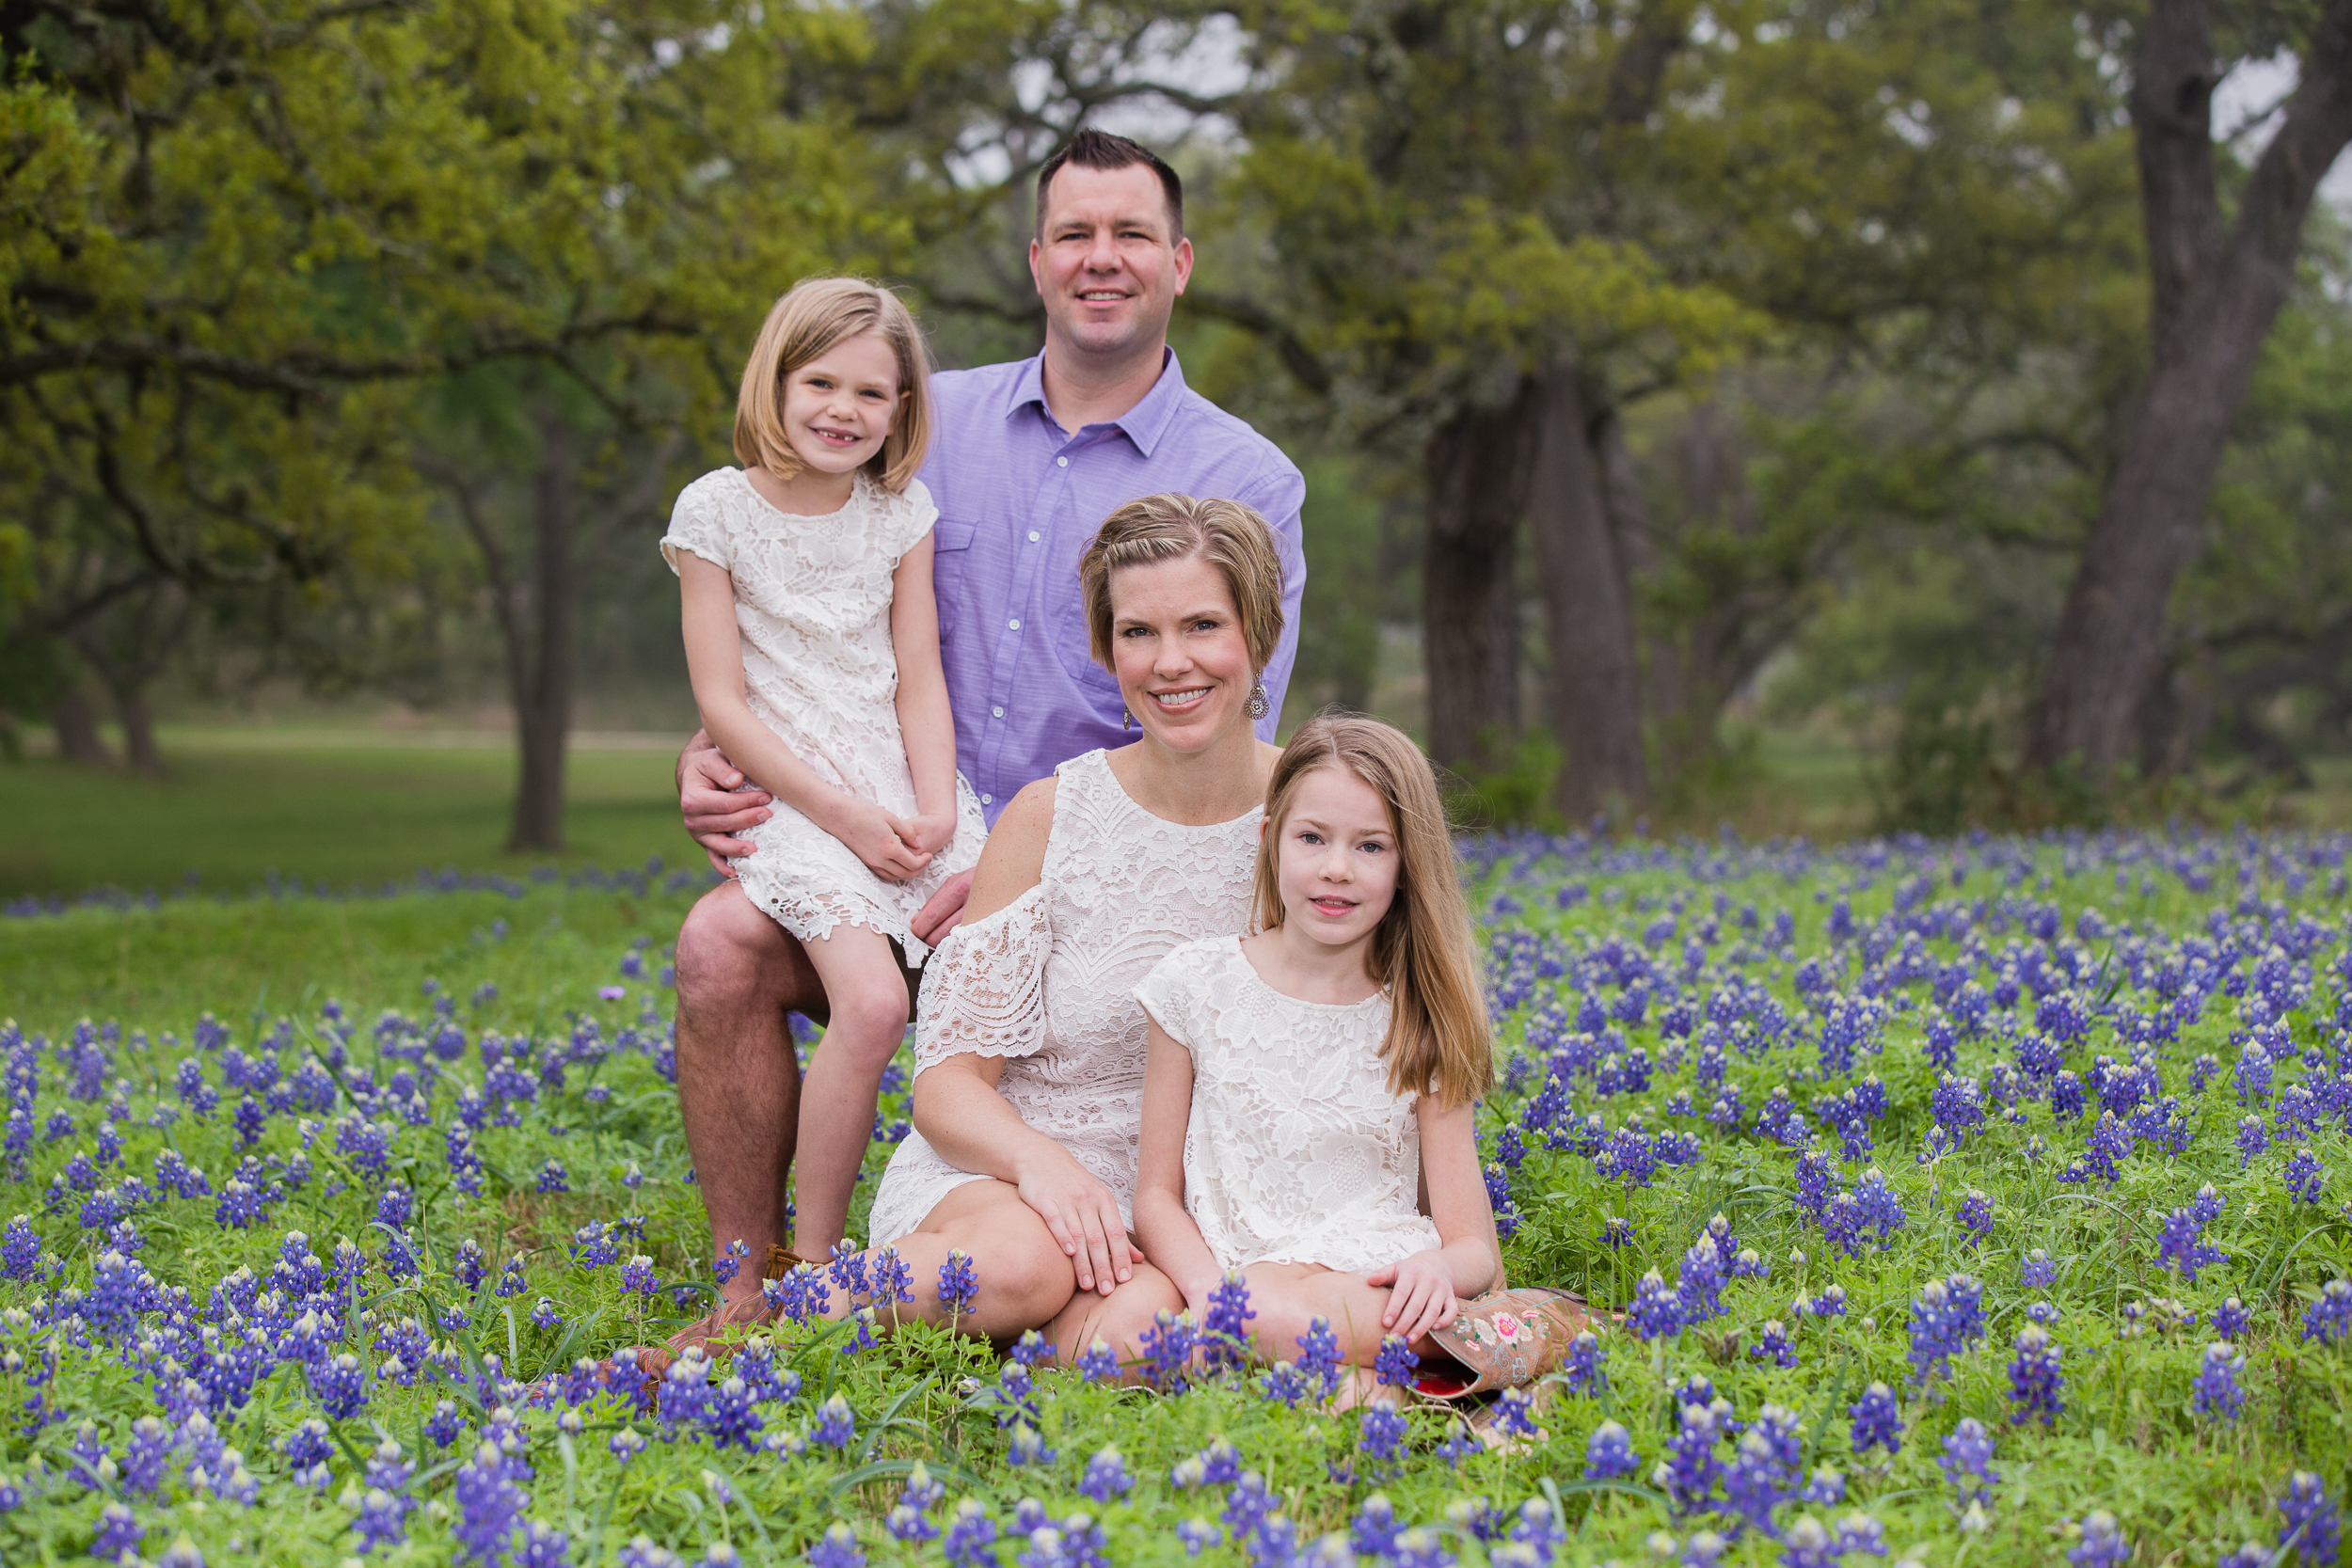 Clothing choice is very important for portraits.  New Braunfels Portrait Photography